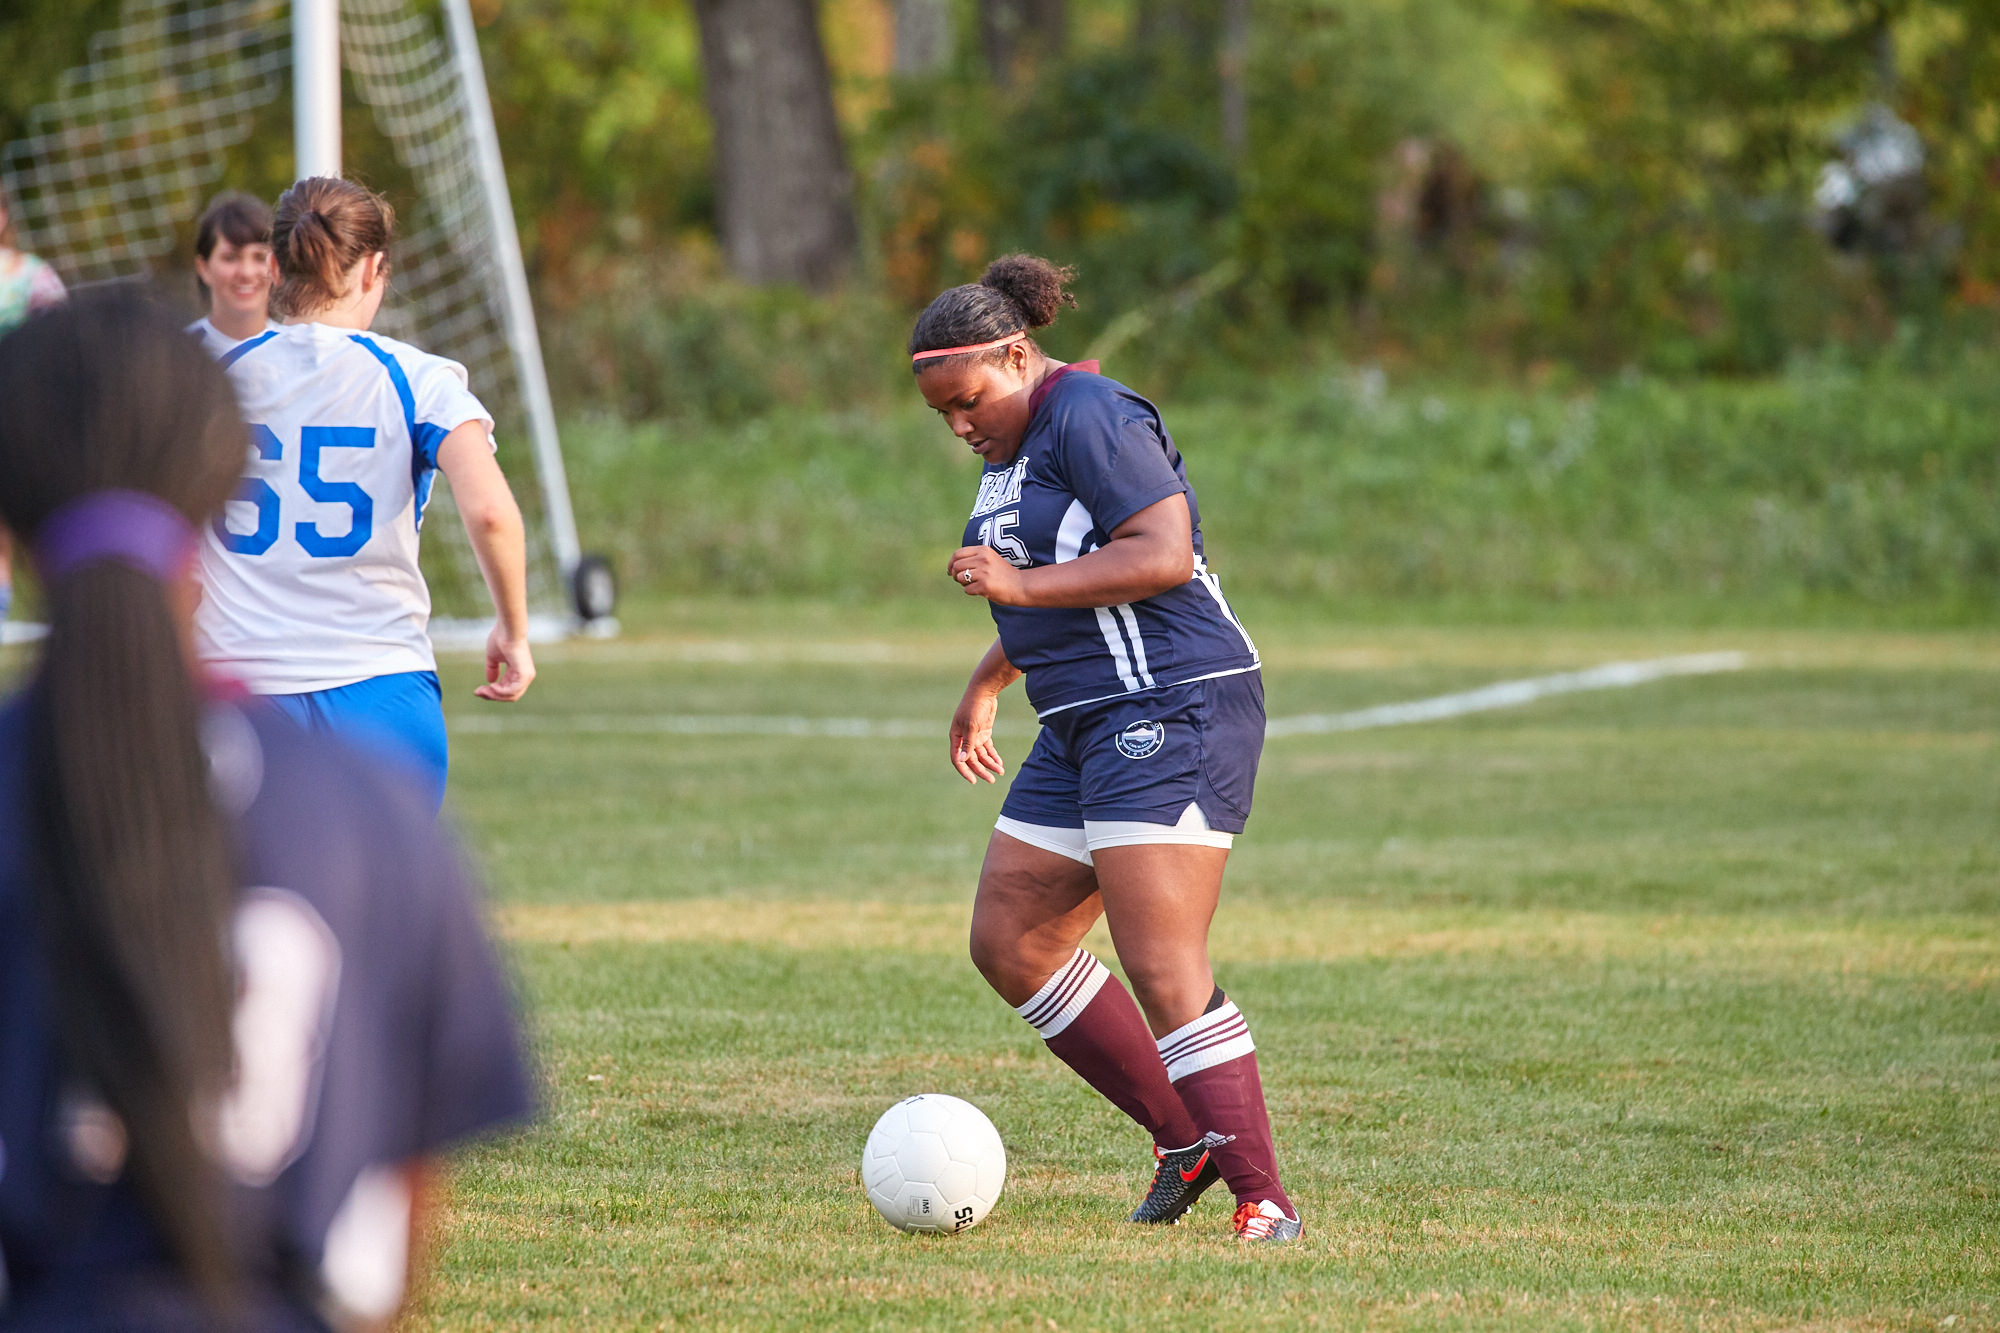 Girls Varsity Soccer vs. Four Rivers Charter Public School - September 23, 2016 - 41893- 000162.jpg